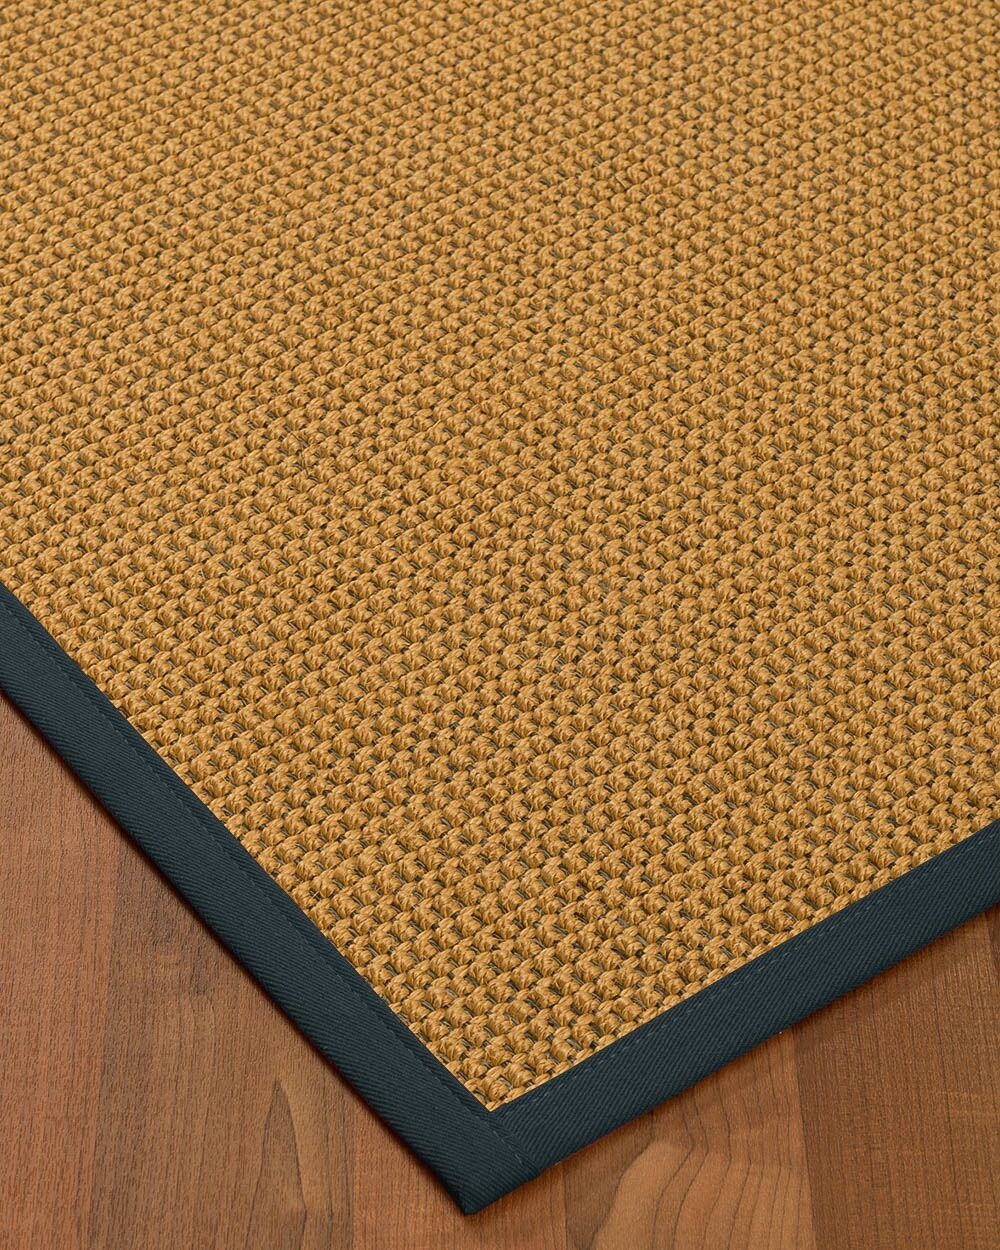 Atia Border Hand-Woven Brown/Marine Area Rug Rug Size: Rectangle 9' x 12', Rug Pad Included: Yes